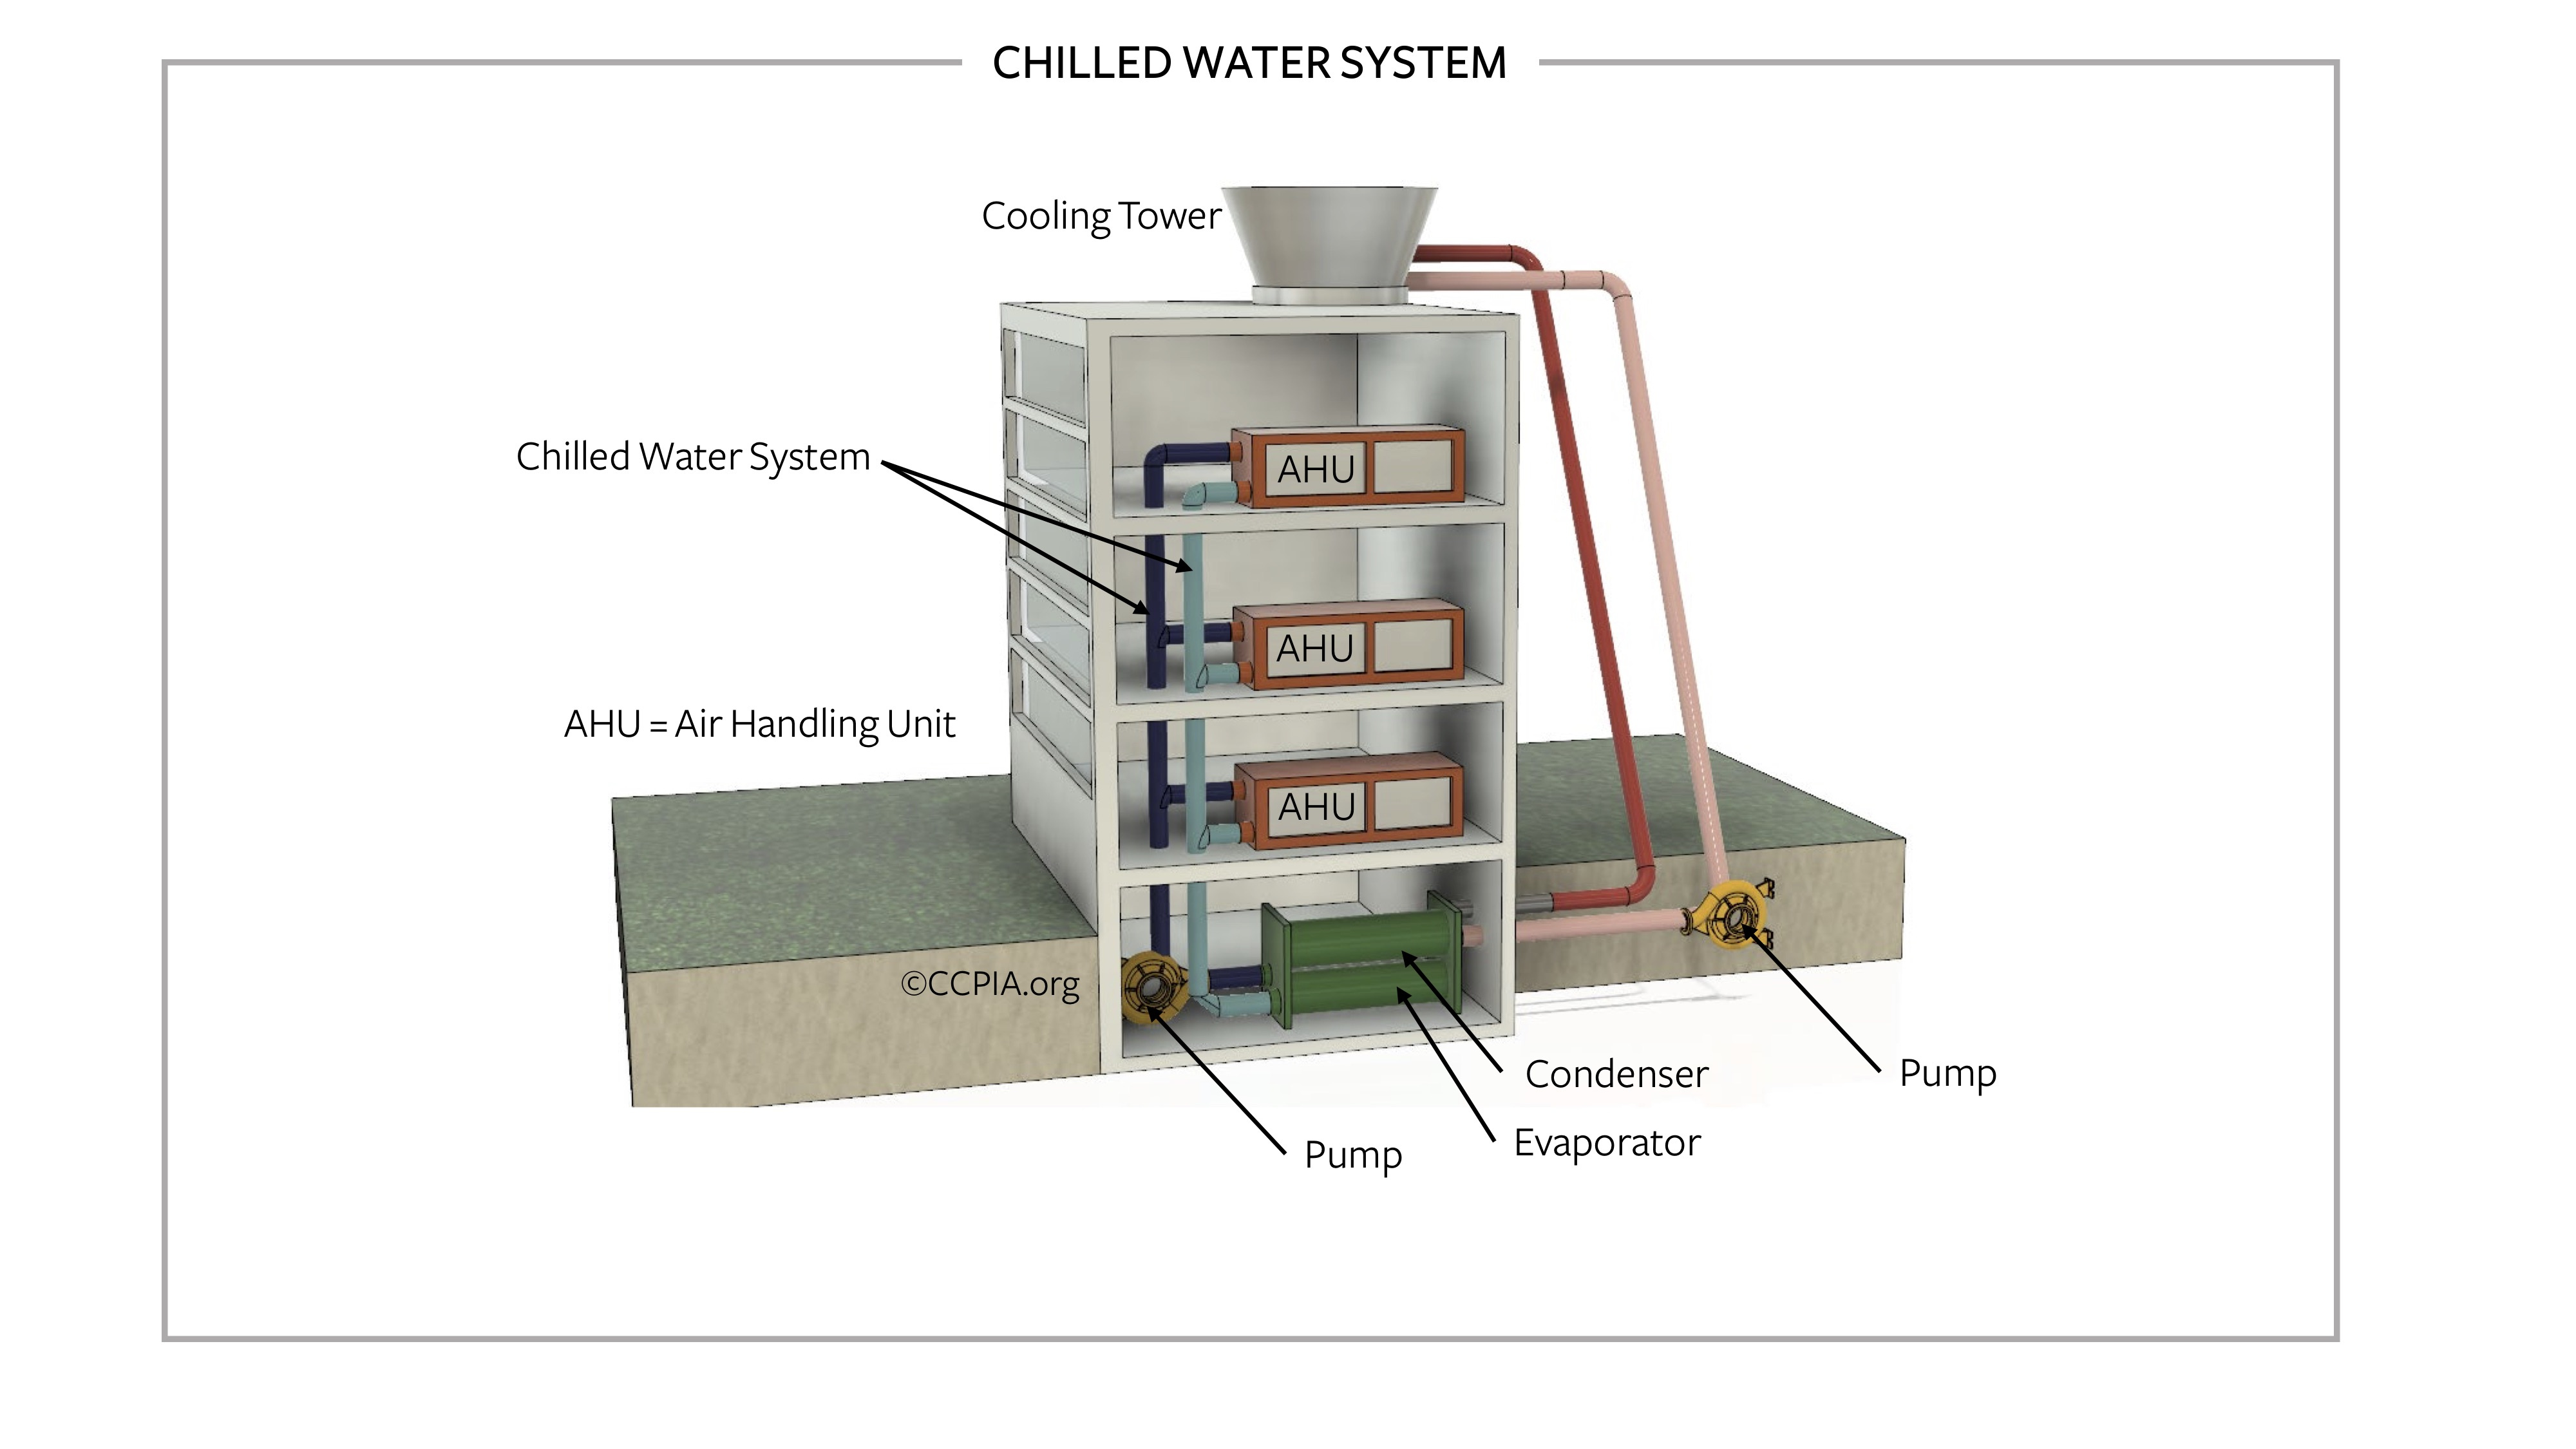 Commercial building chilled water system.